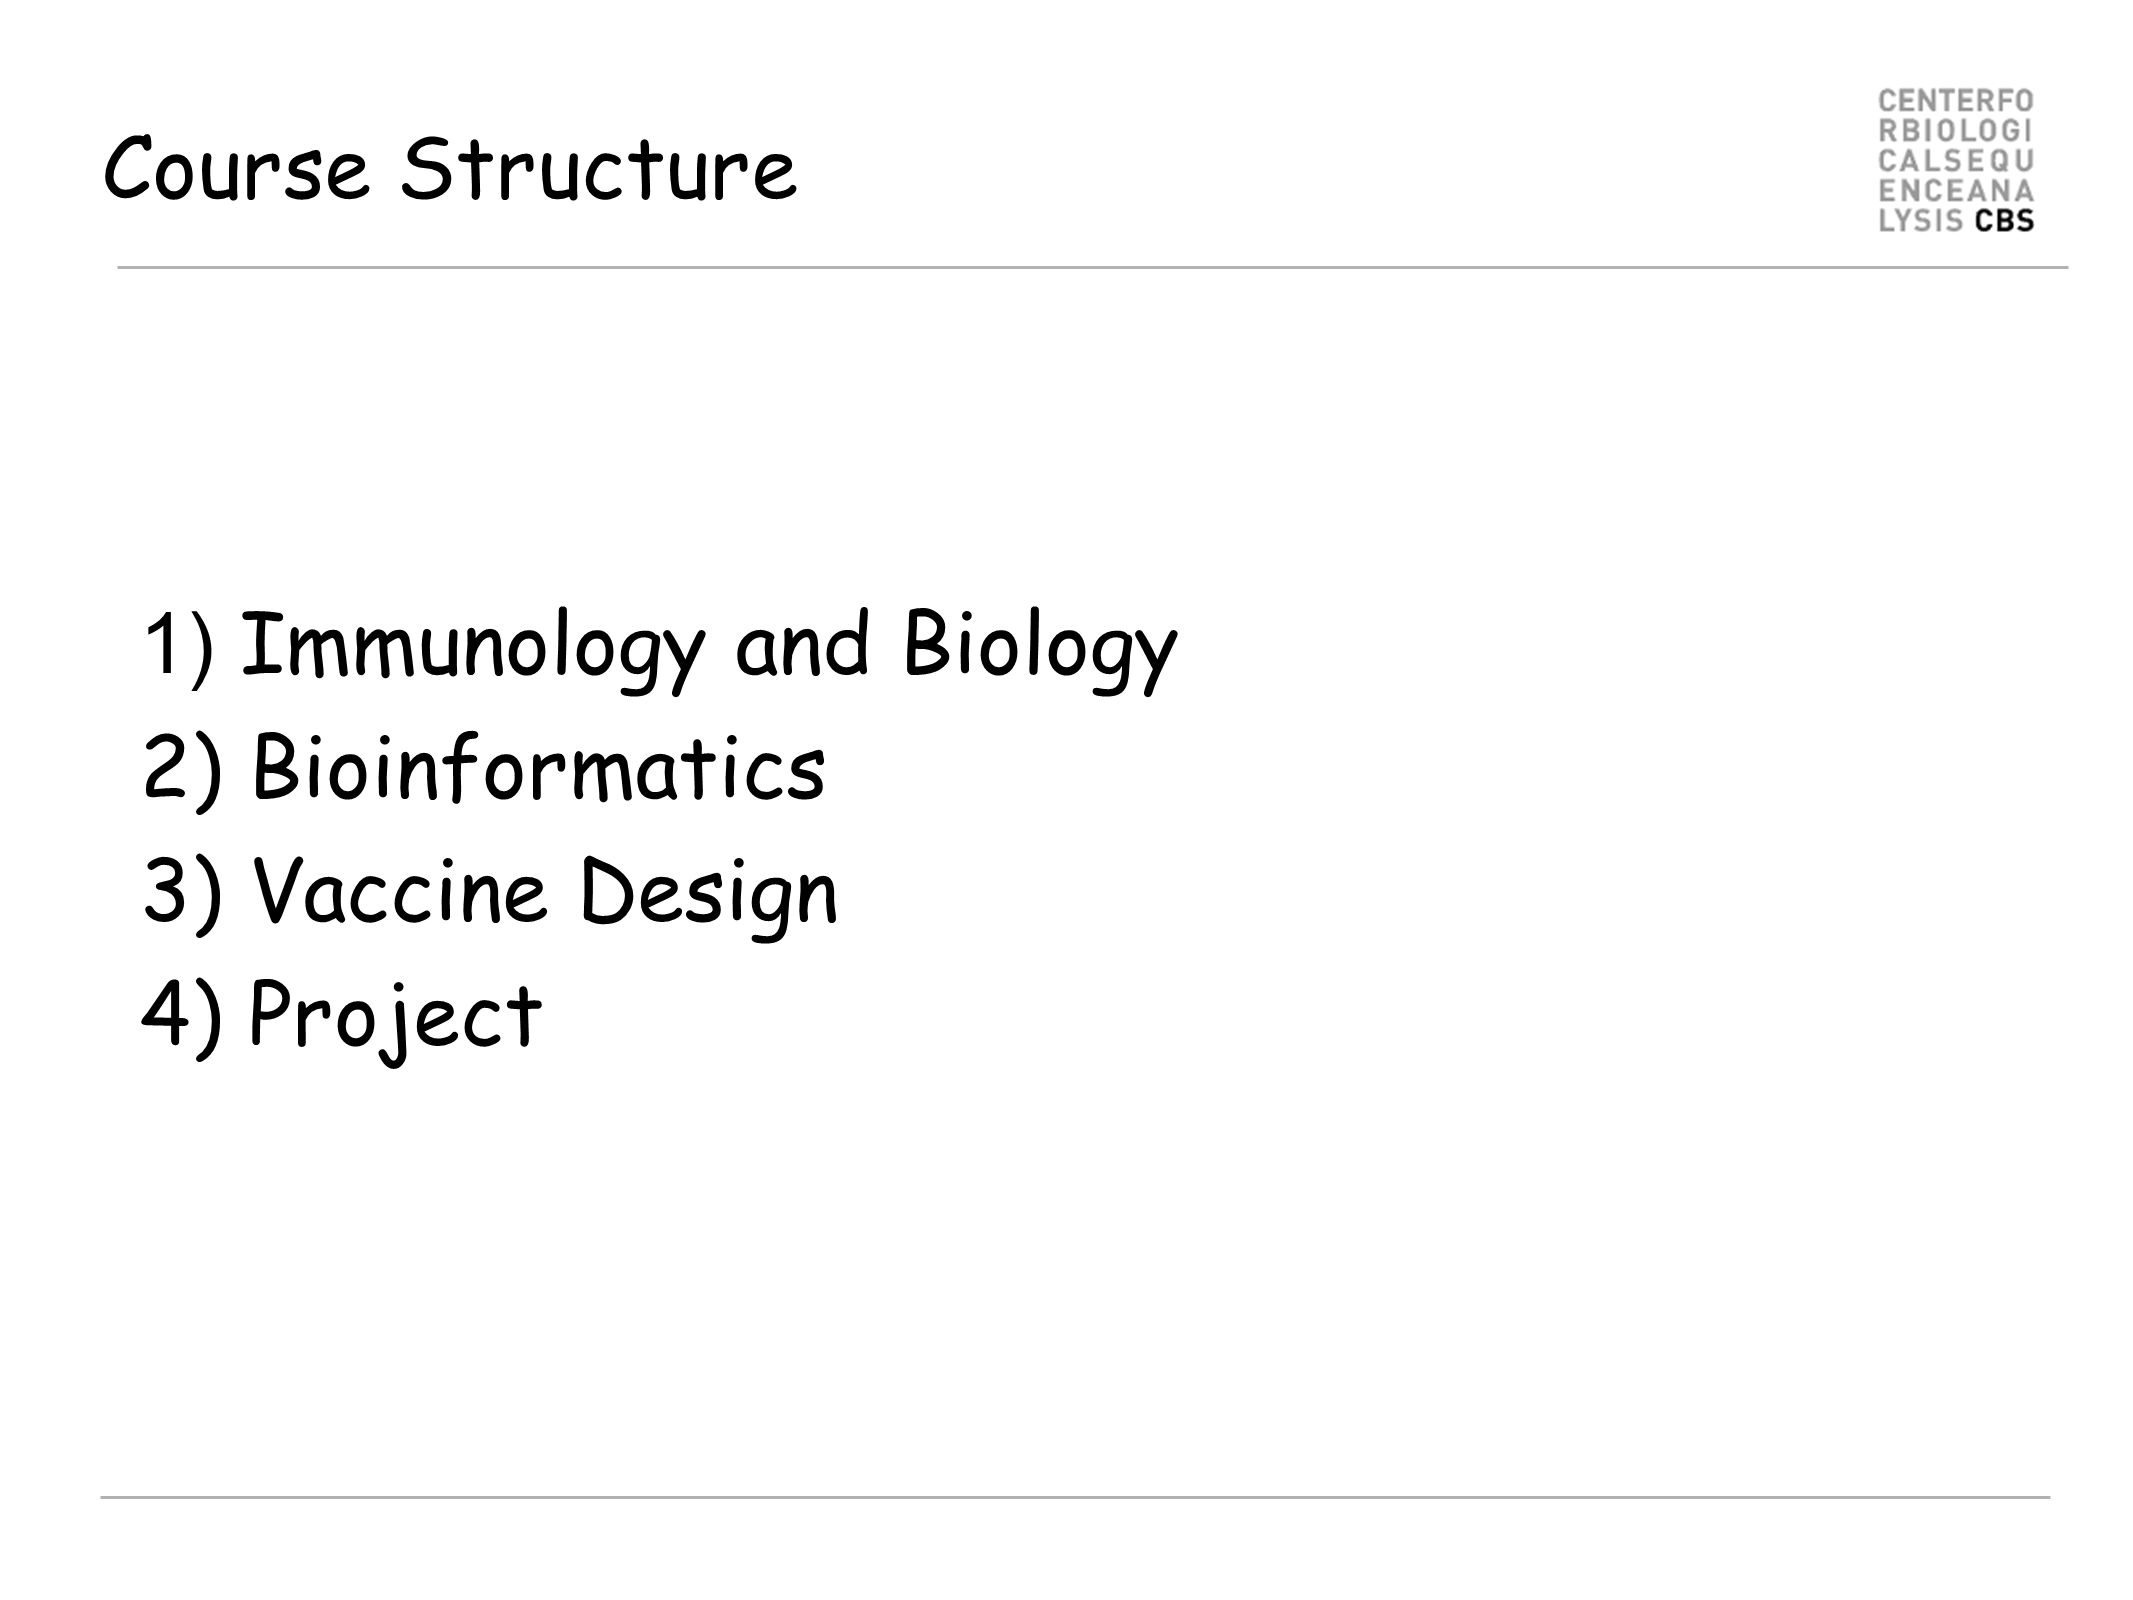 Course Structure 1) Immunology and Biology 2) Bioinformatics 3) Vaccine Design 4) Project